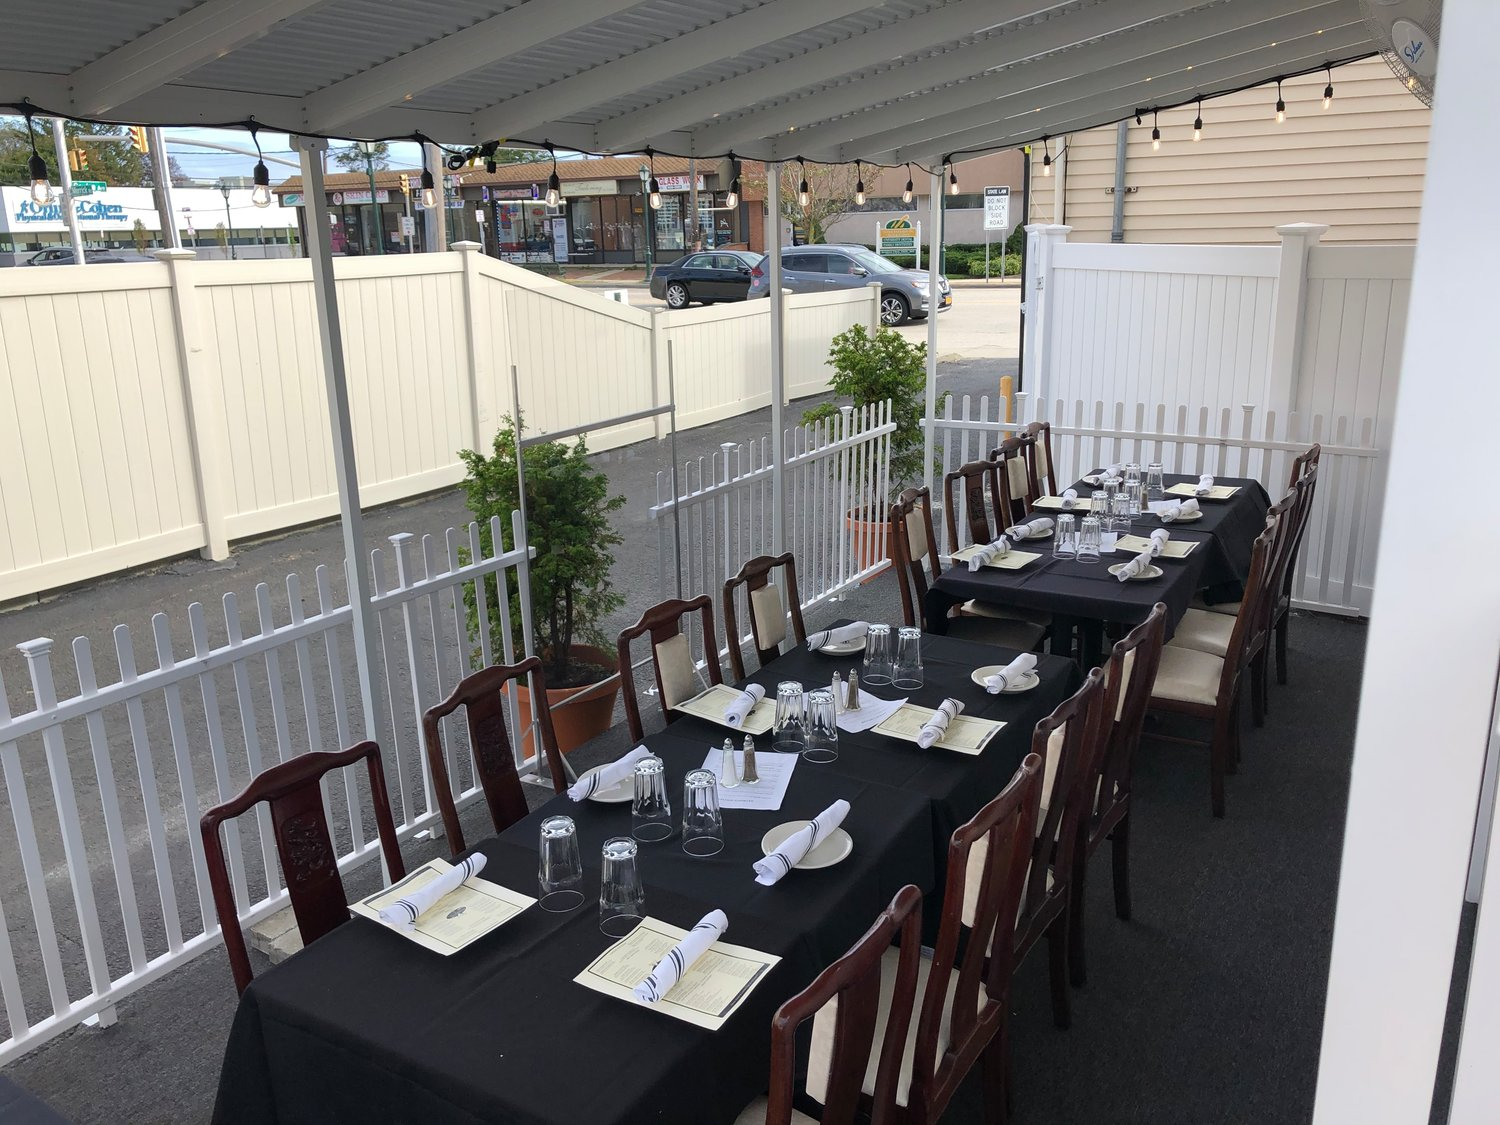 At Anthony's Kitchen & Cocktails in Bellmore, space heaters have kept diners warm within its outdoor patio.